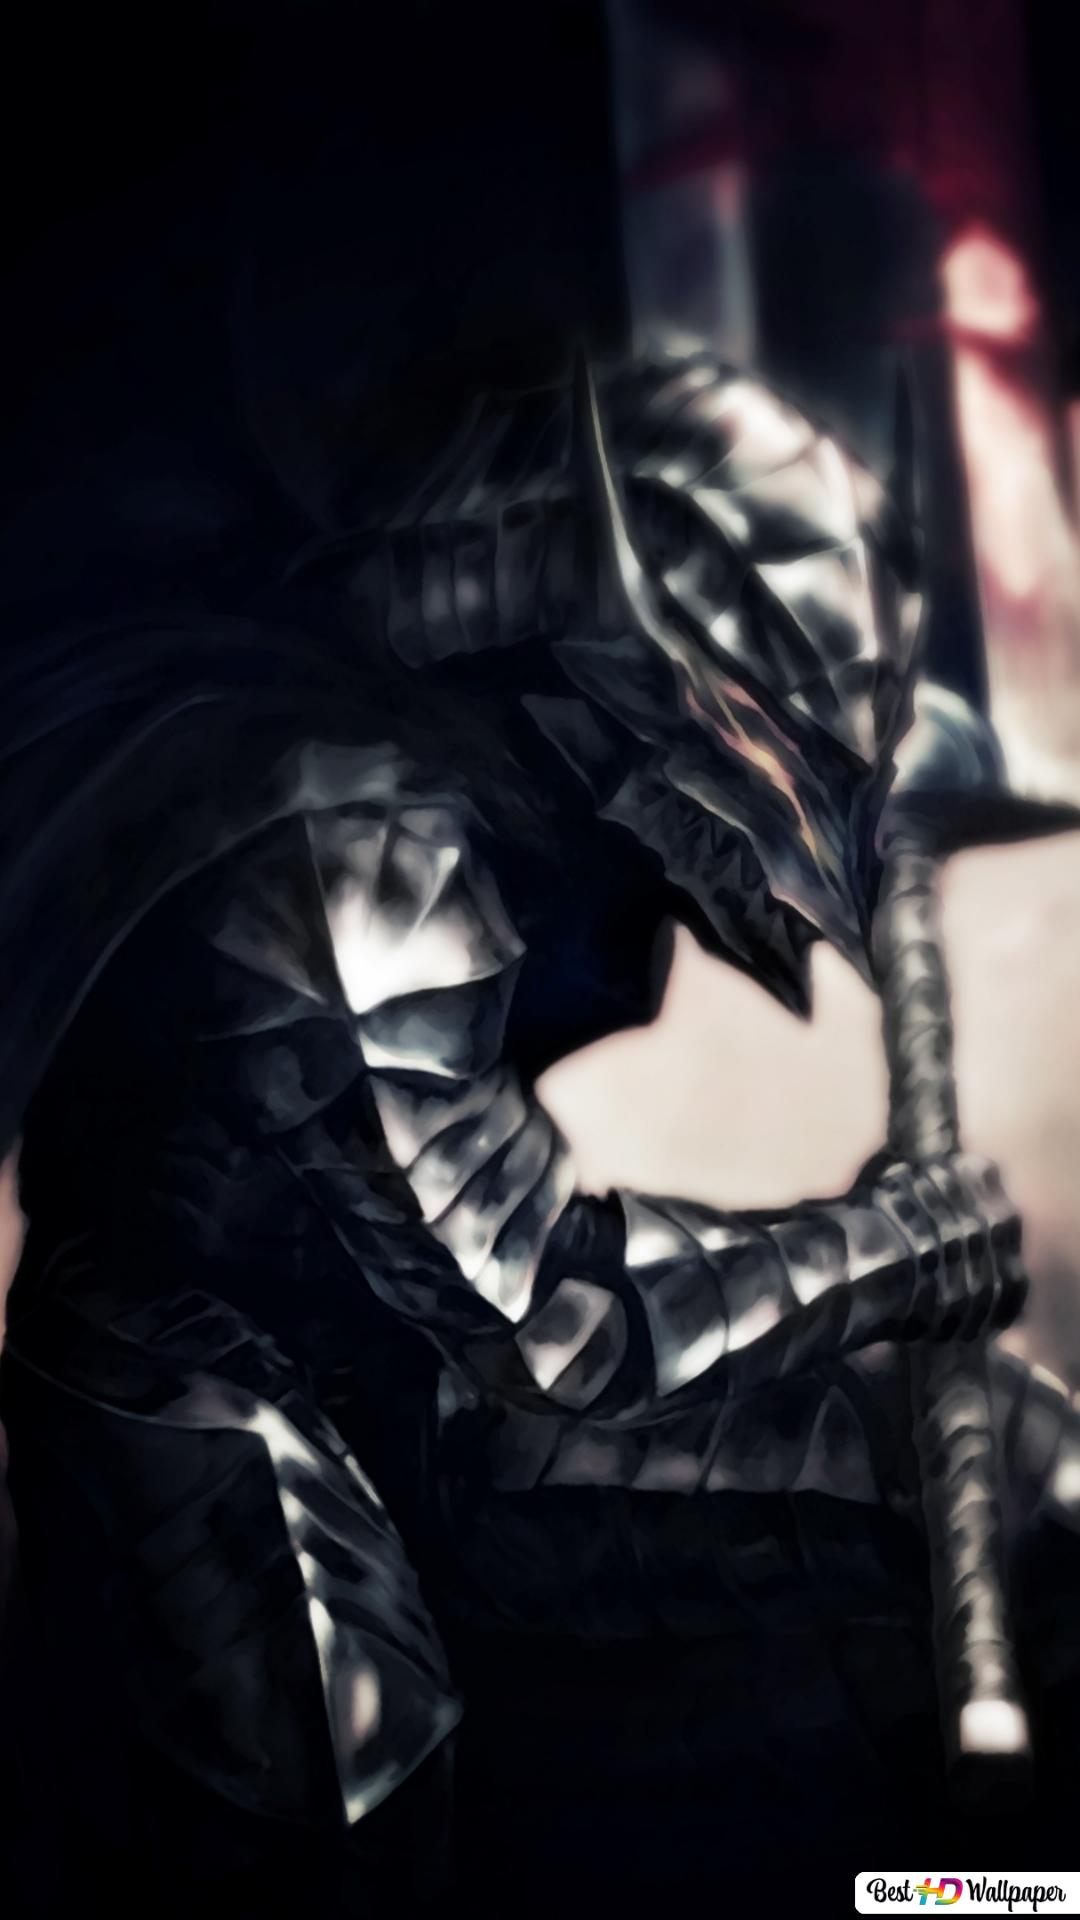 Berserk Guts Berserk Armor Hd Wallpaper Download